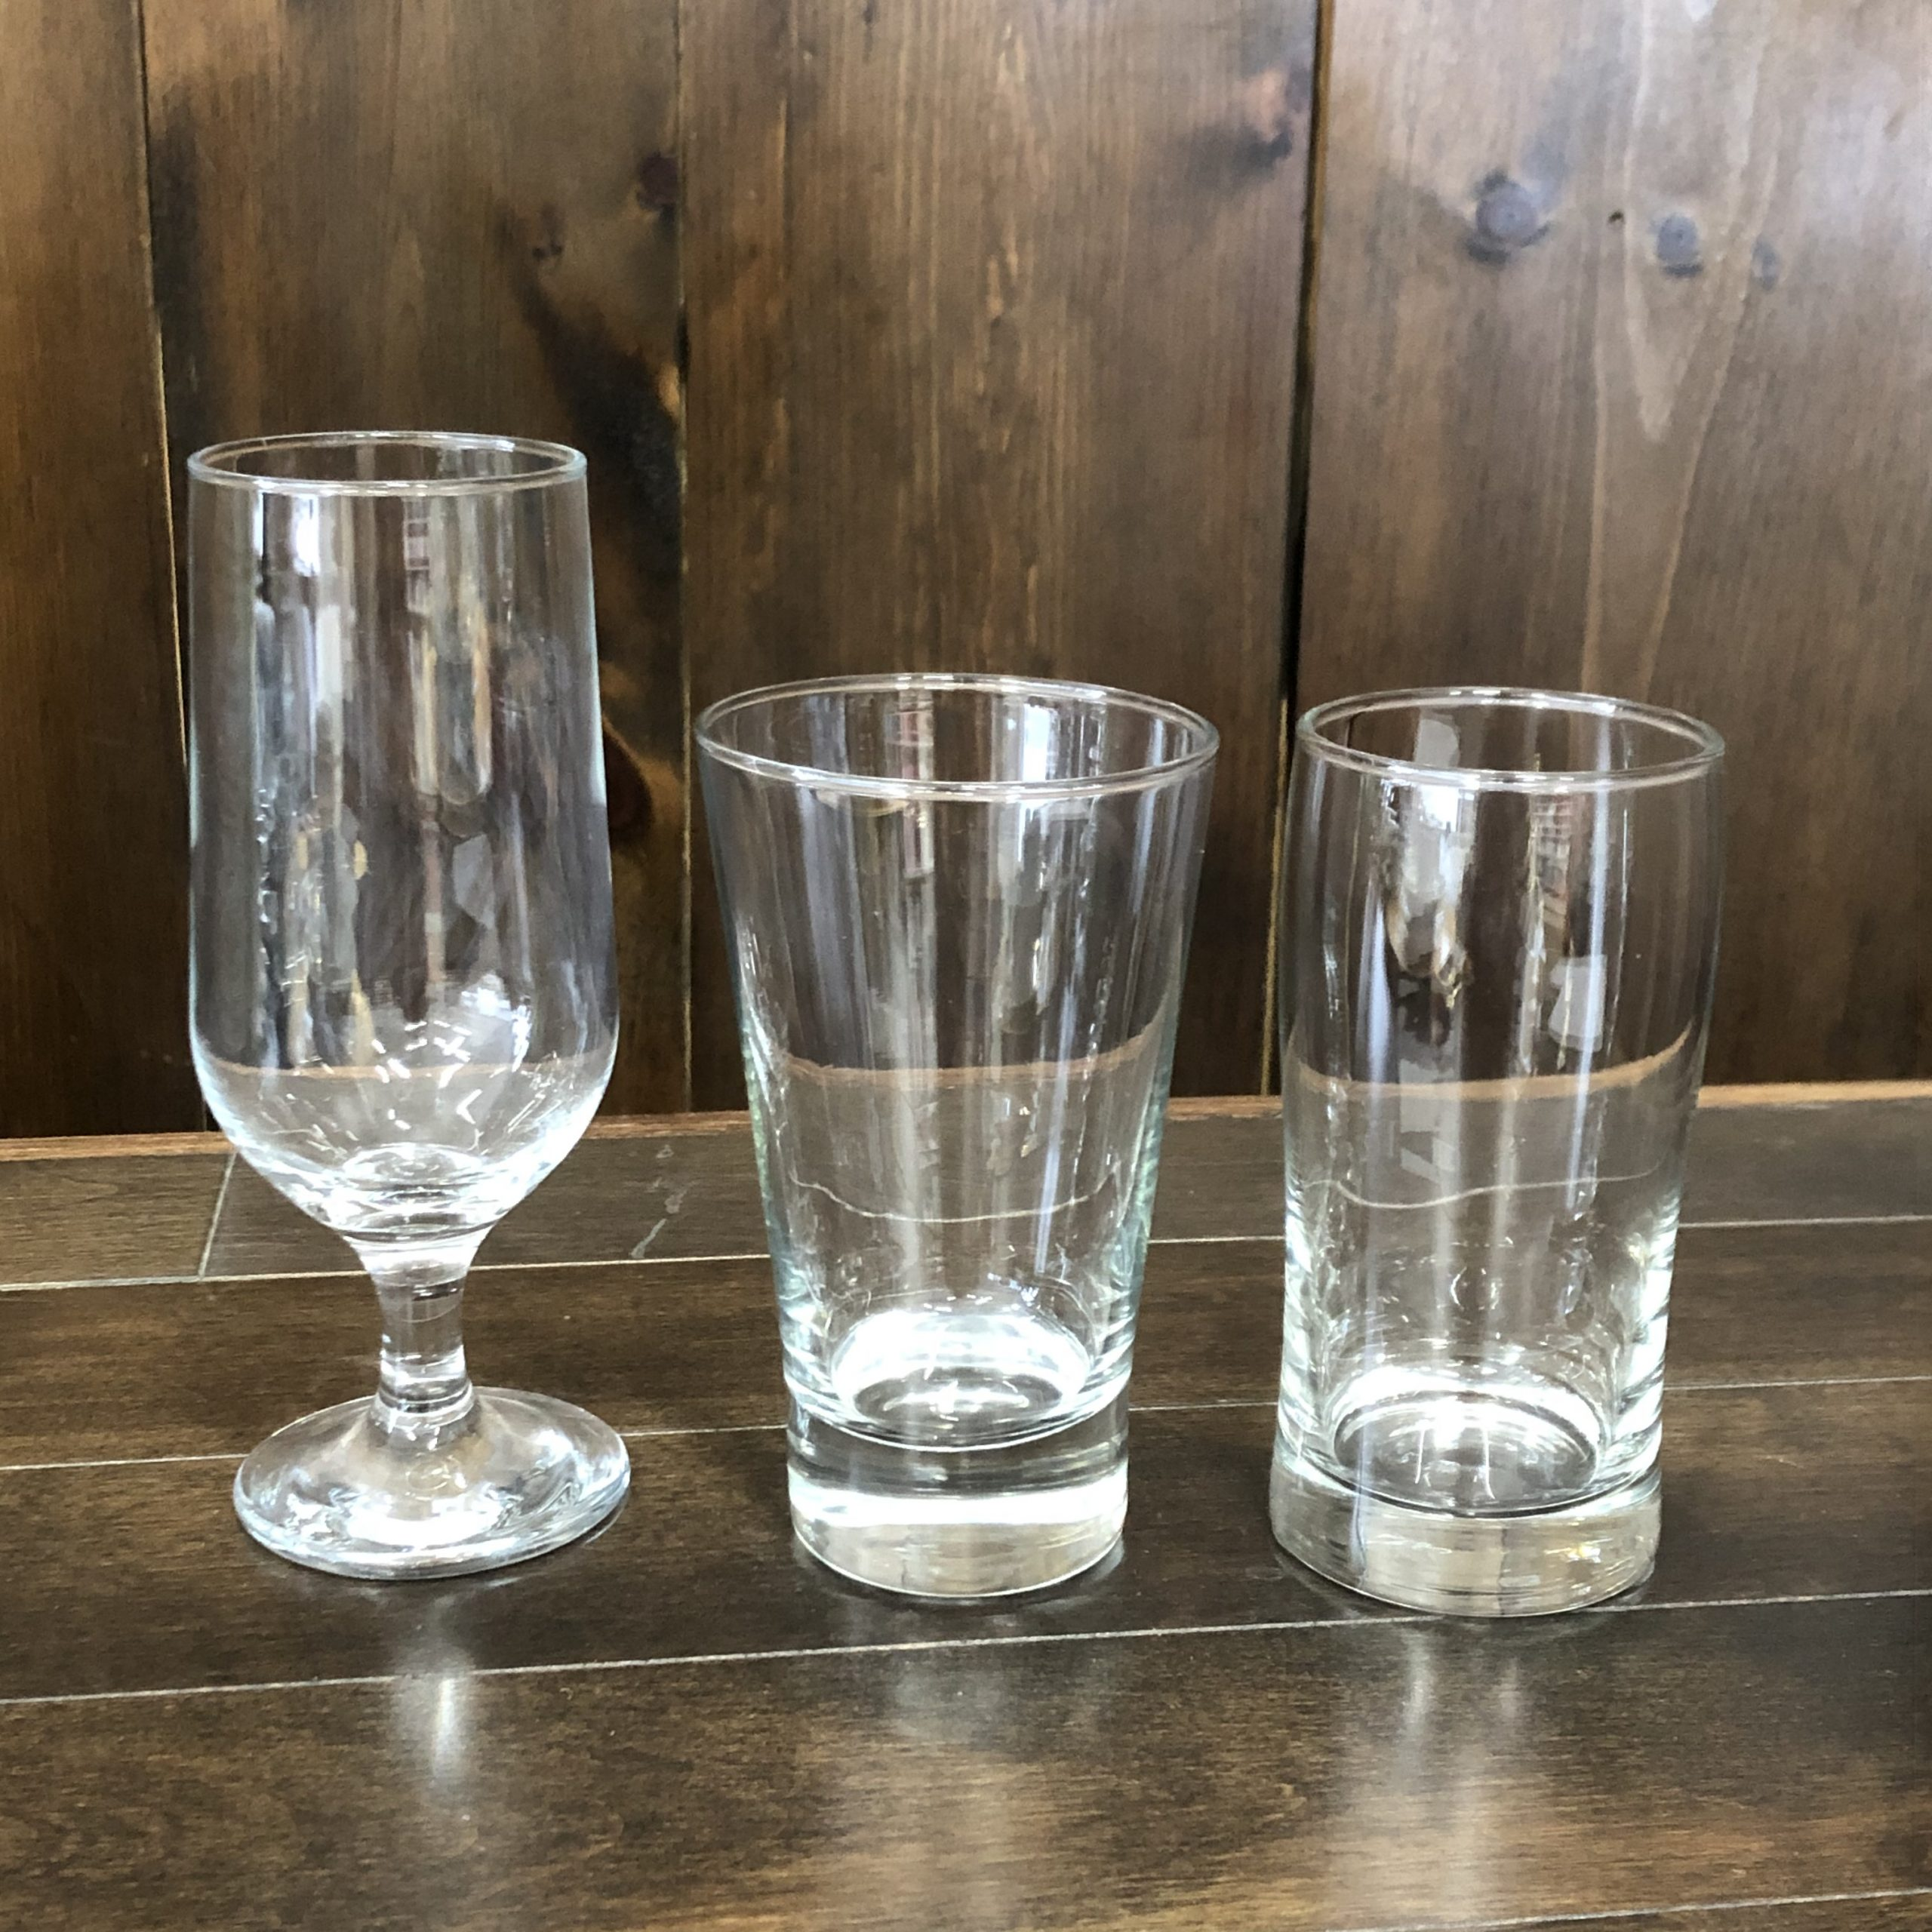 Beer Glasses Image